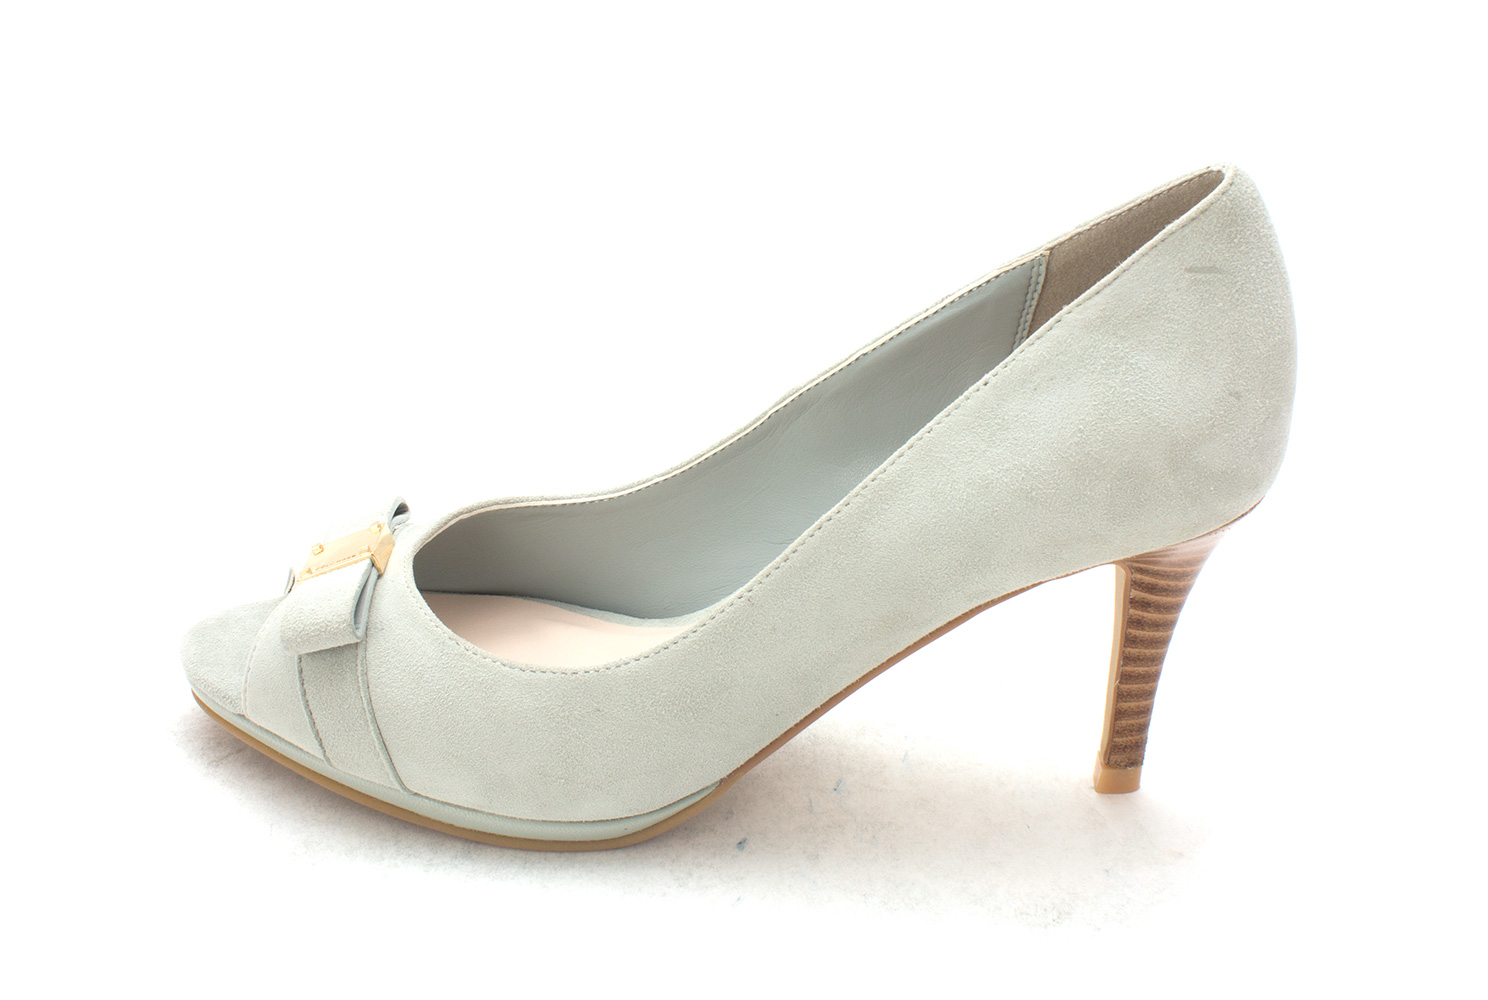 Cole Haan Womens Clarissasam Pointed Toe Classic Pumps Grey Jade Size 6.0